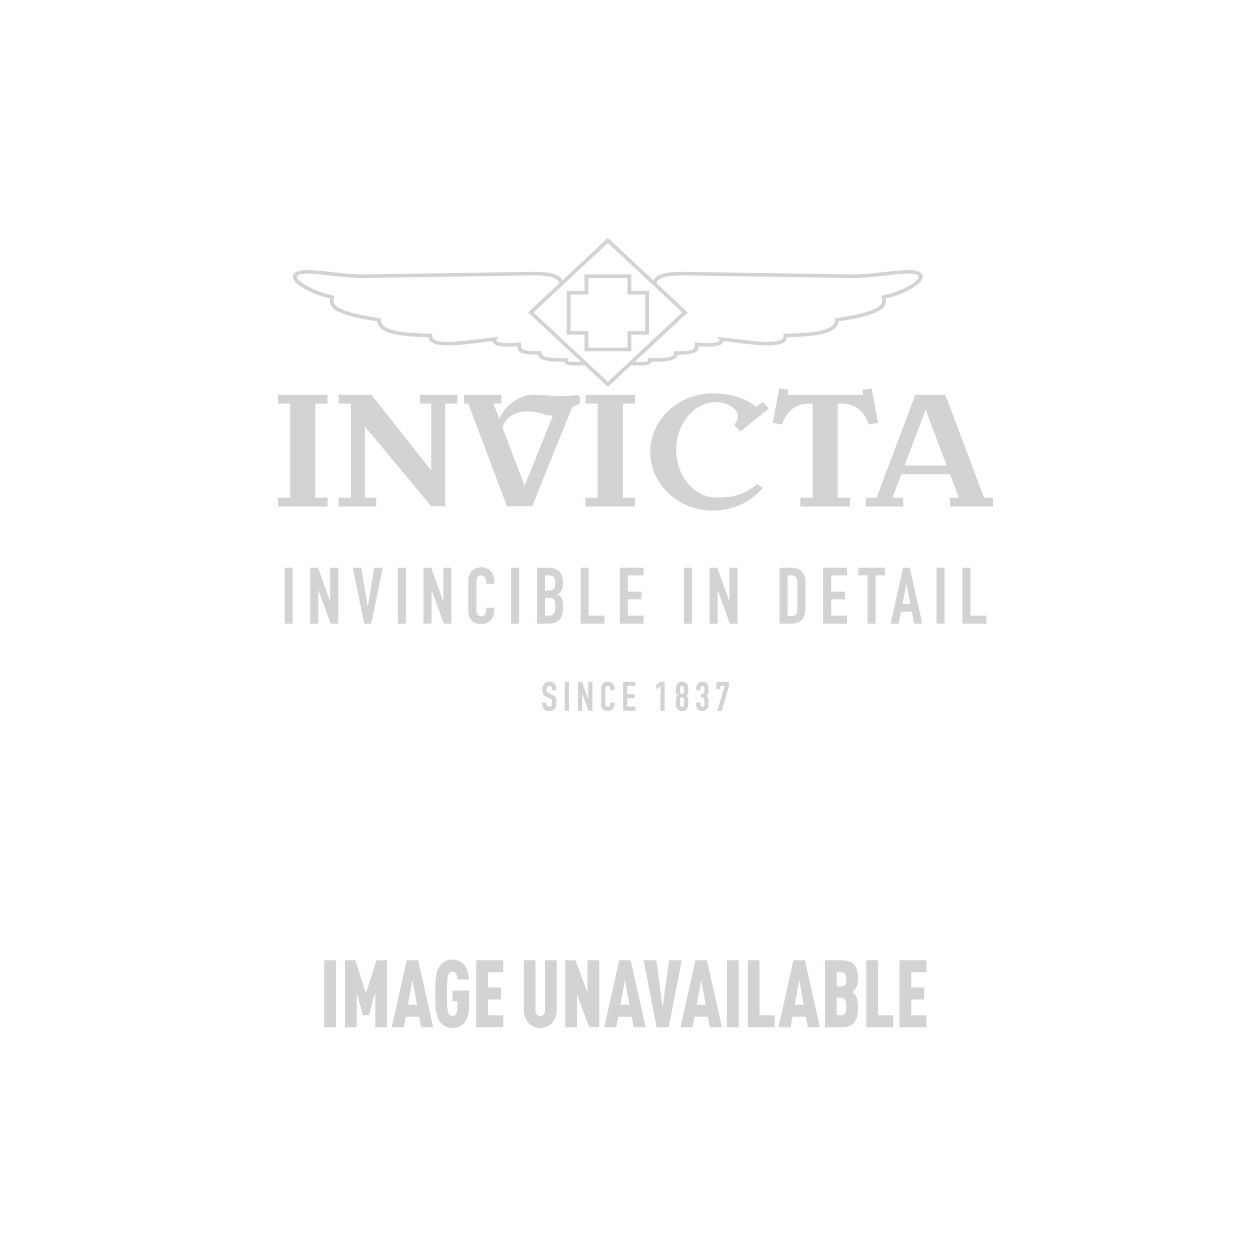 Invicta Watch Group is a Swiss watch company which trades under the name